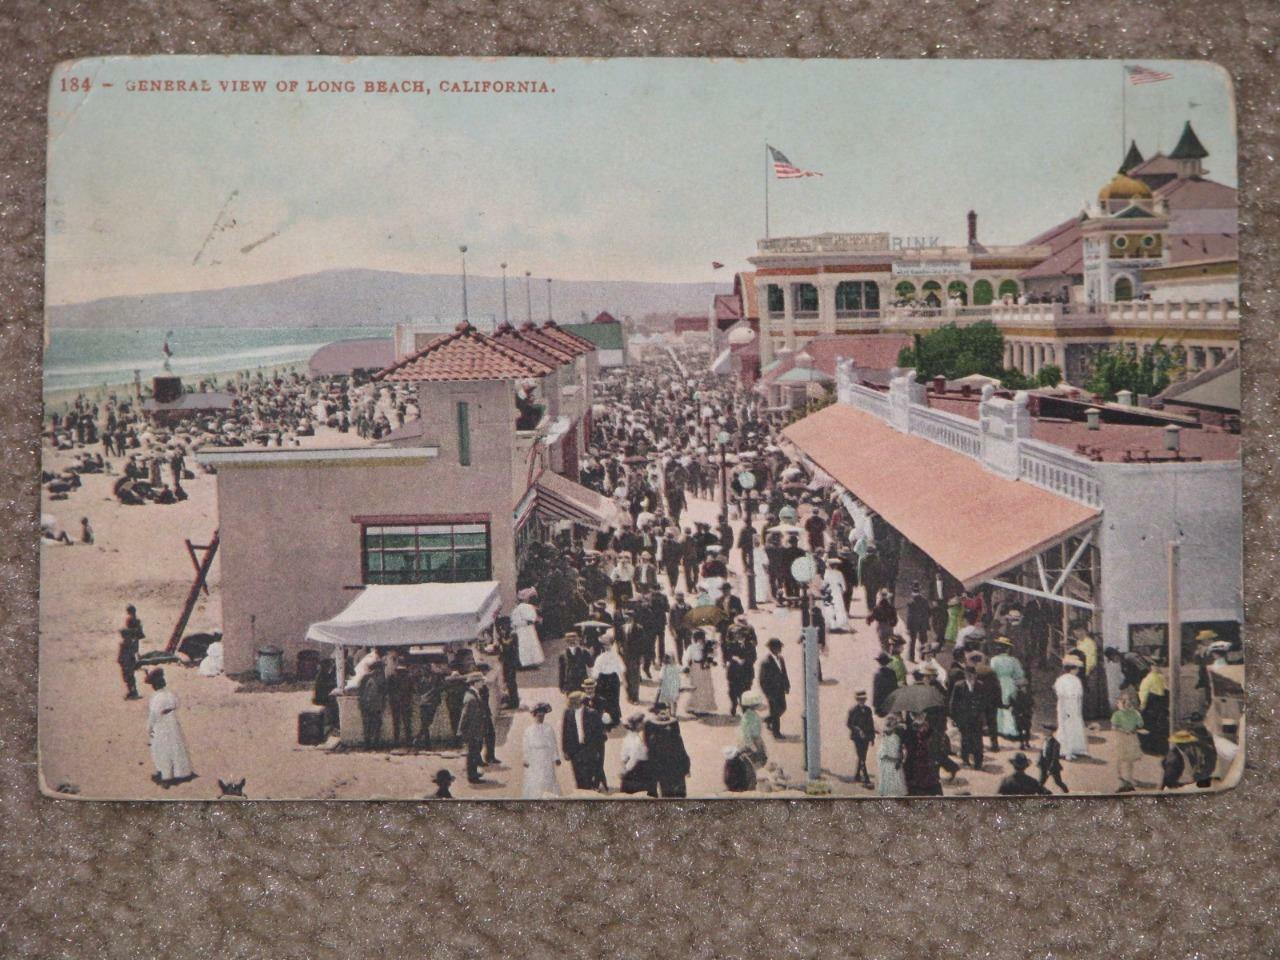 General View of Long Beach, California 1908, used vintage card